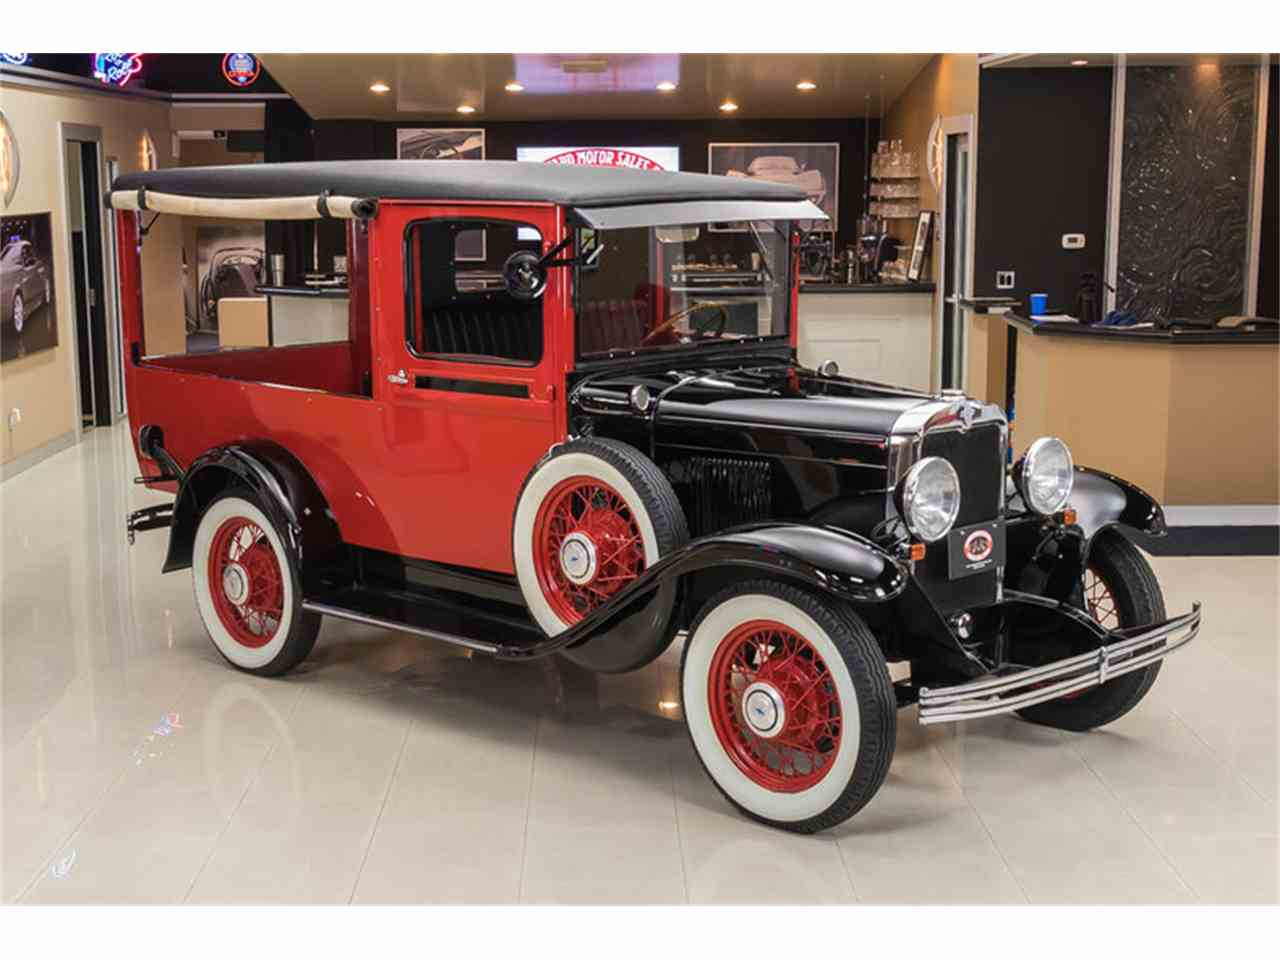 Large Picture of Classic 1930 Chevrolet Huckster Truck located in Plymouth Michigan - $49,900.00 Offered by Vanguard Motor Sales - L5ME